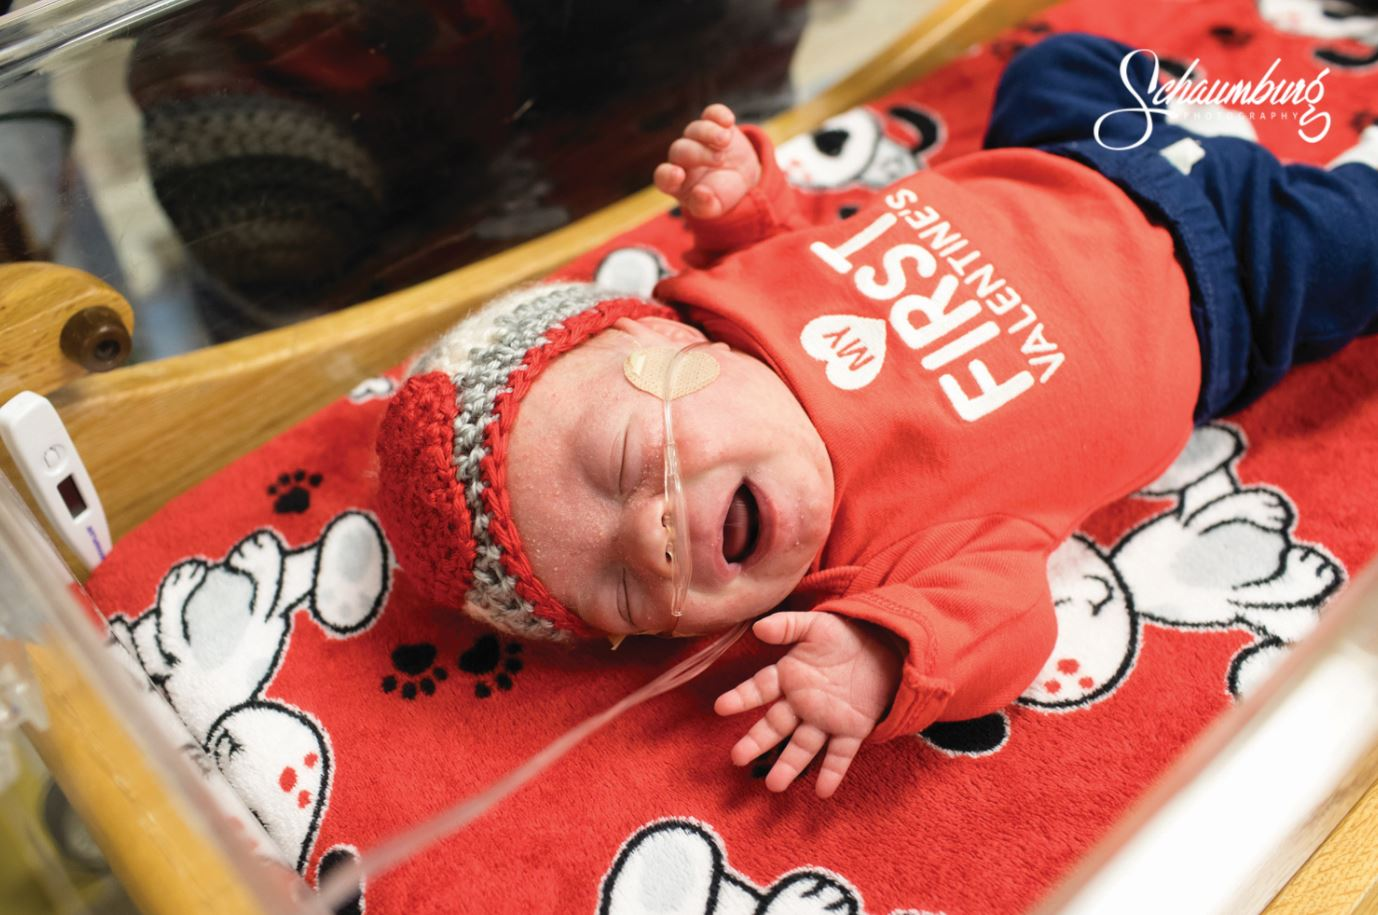 Saint Luke's Hospital's NICU Babies Find Fame After Holiday Photos Go Viral